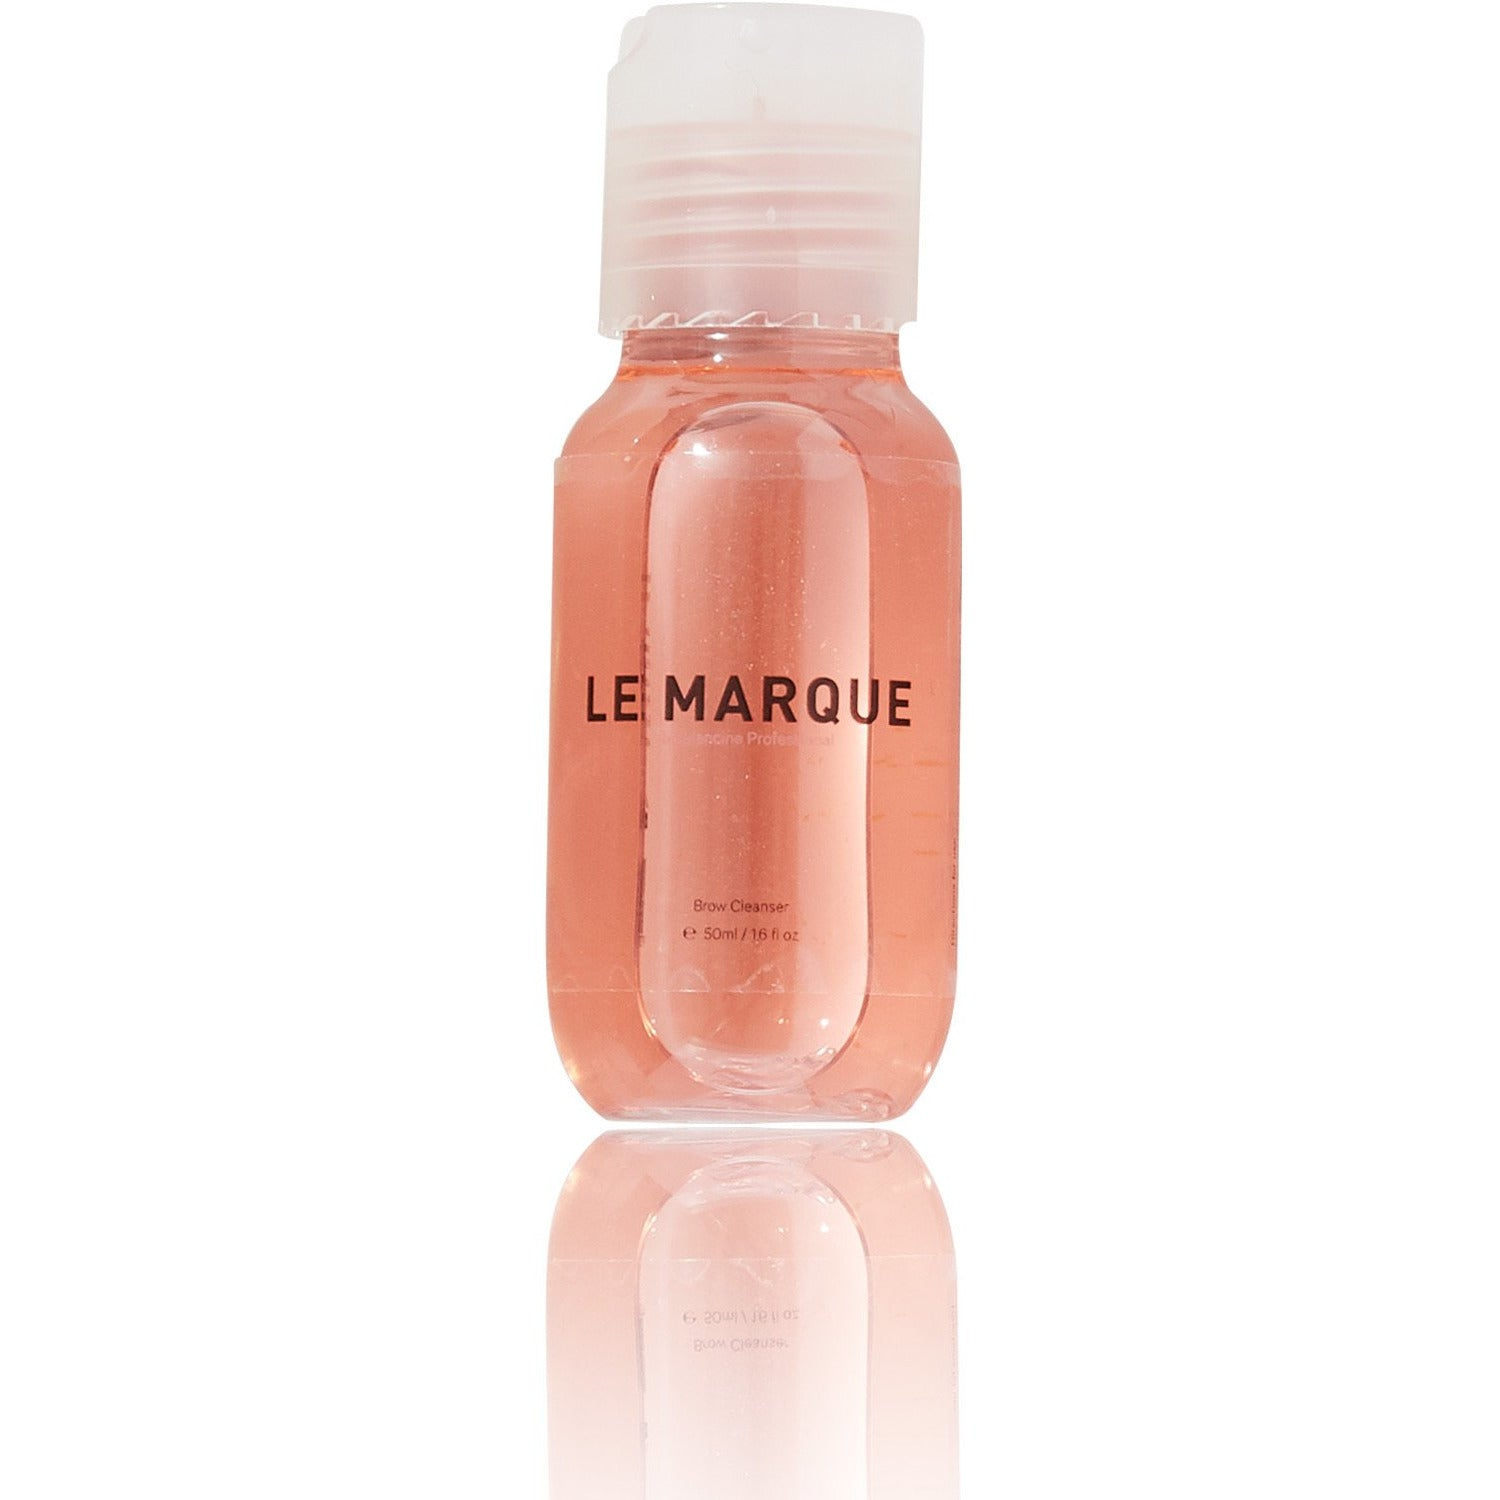 Le Marque Cleanser